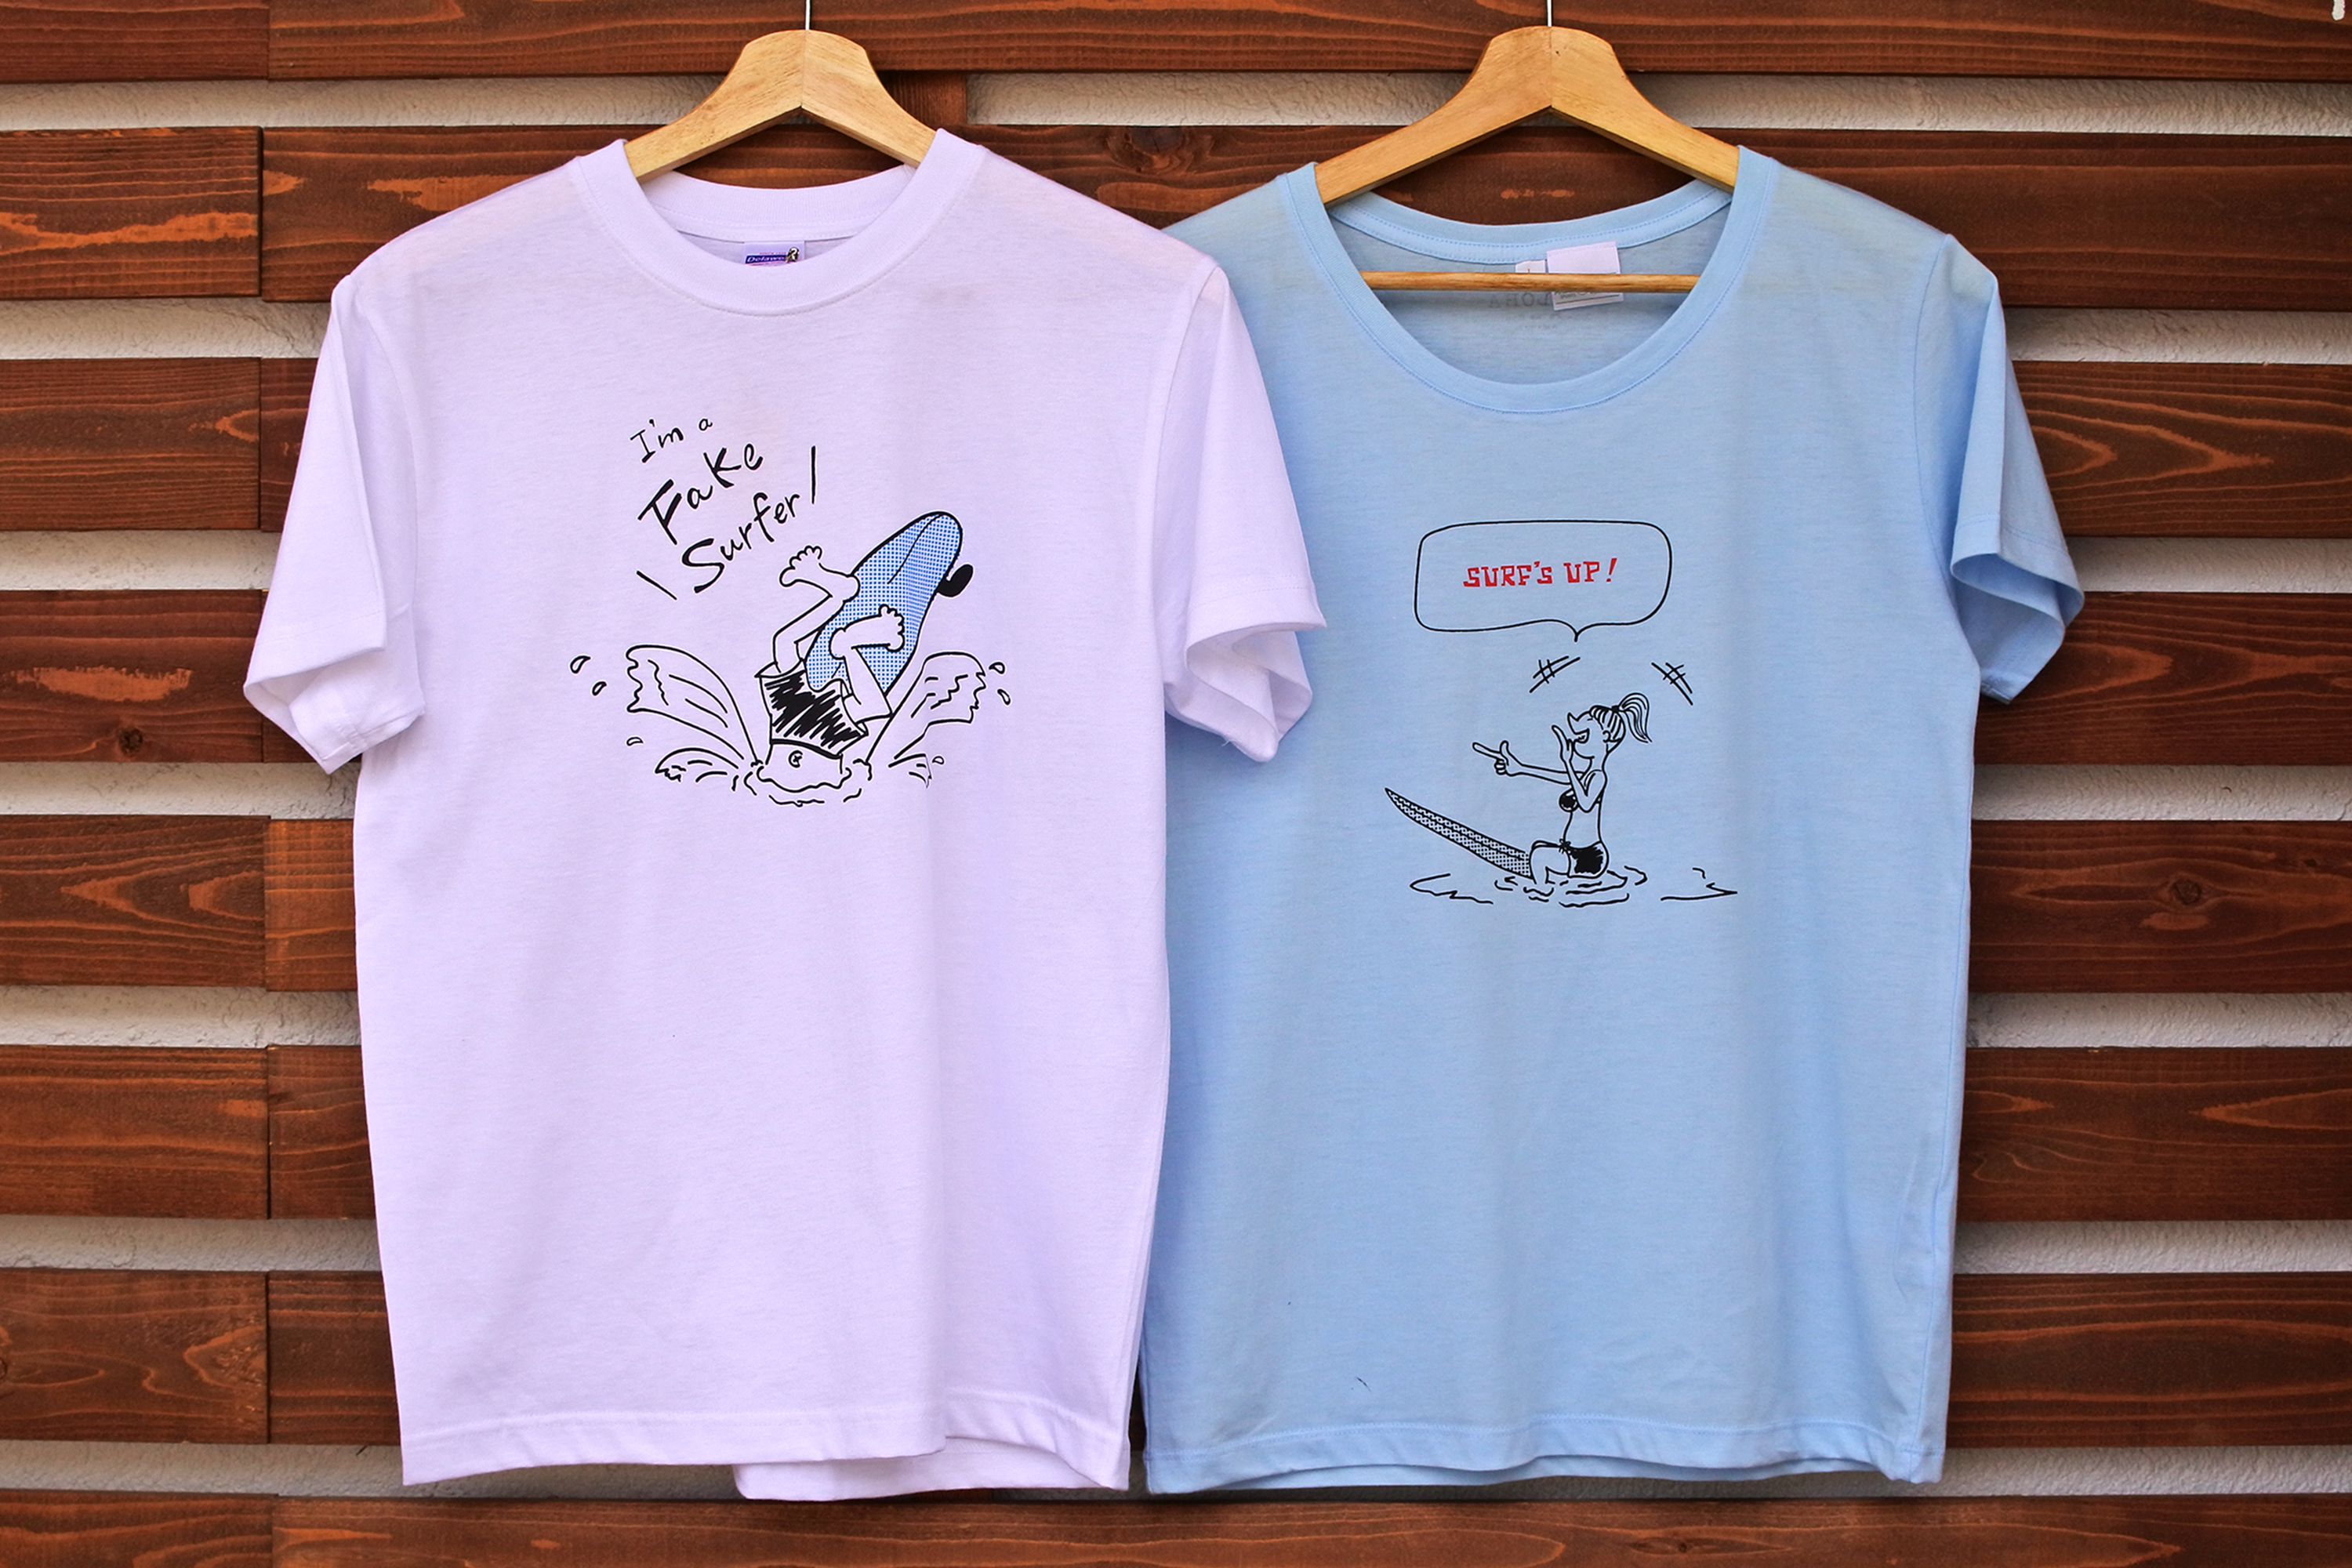 Surfer T-shirts